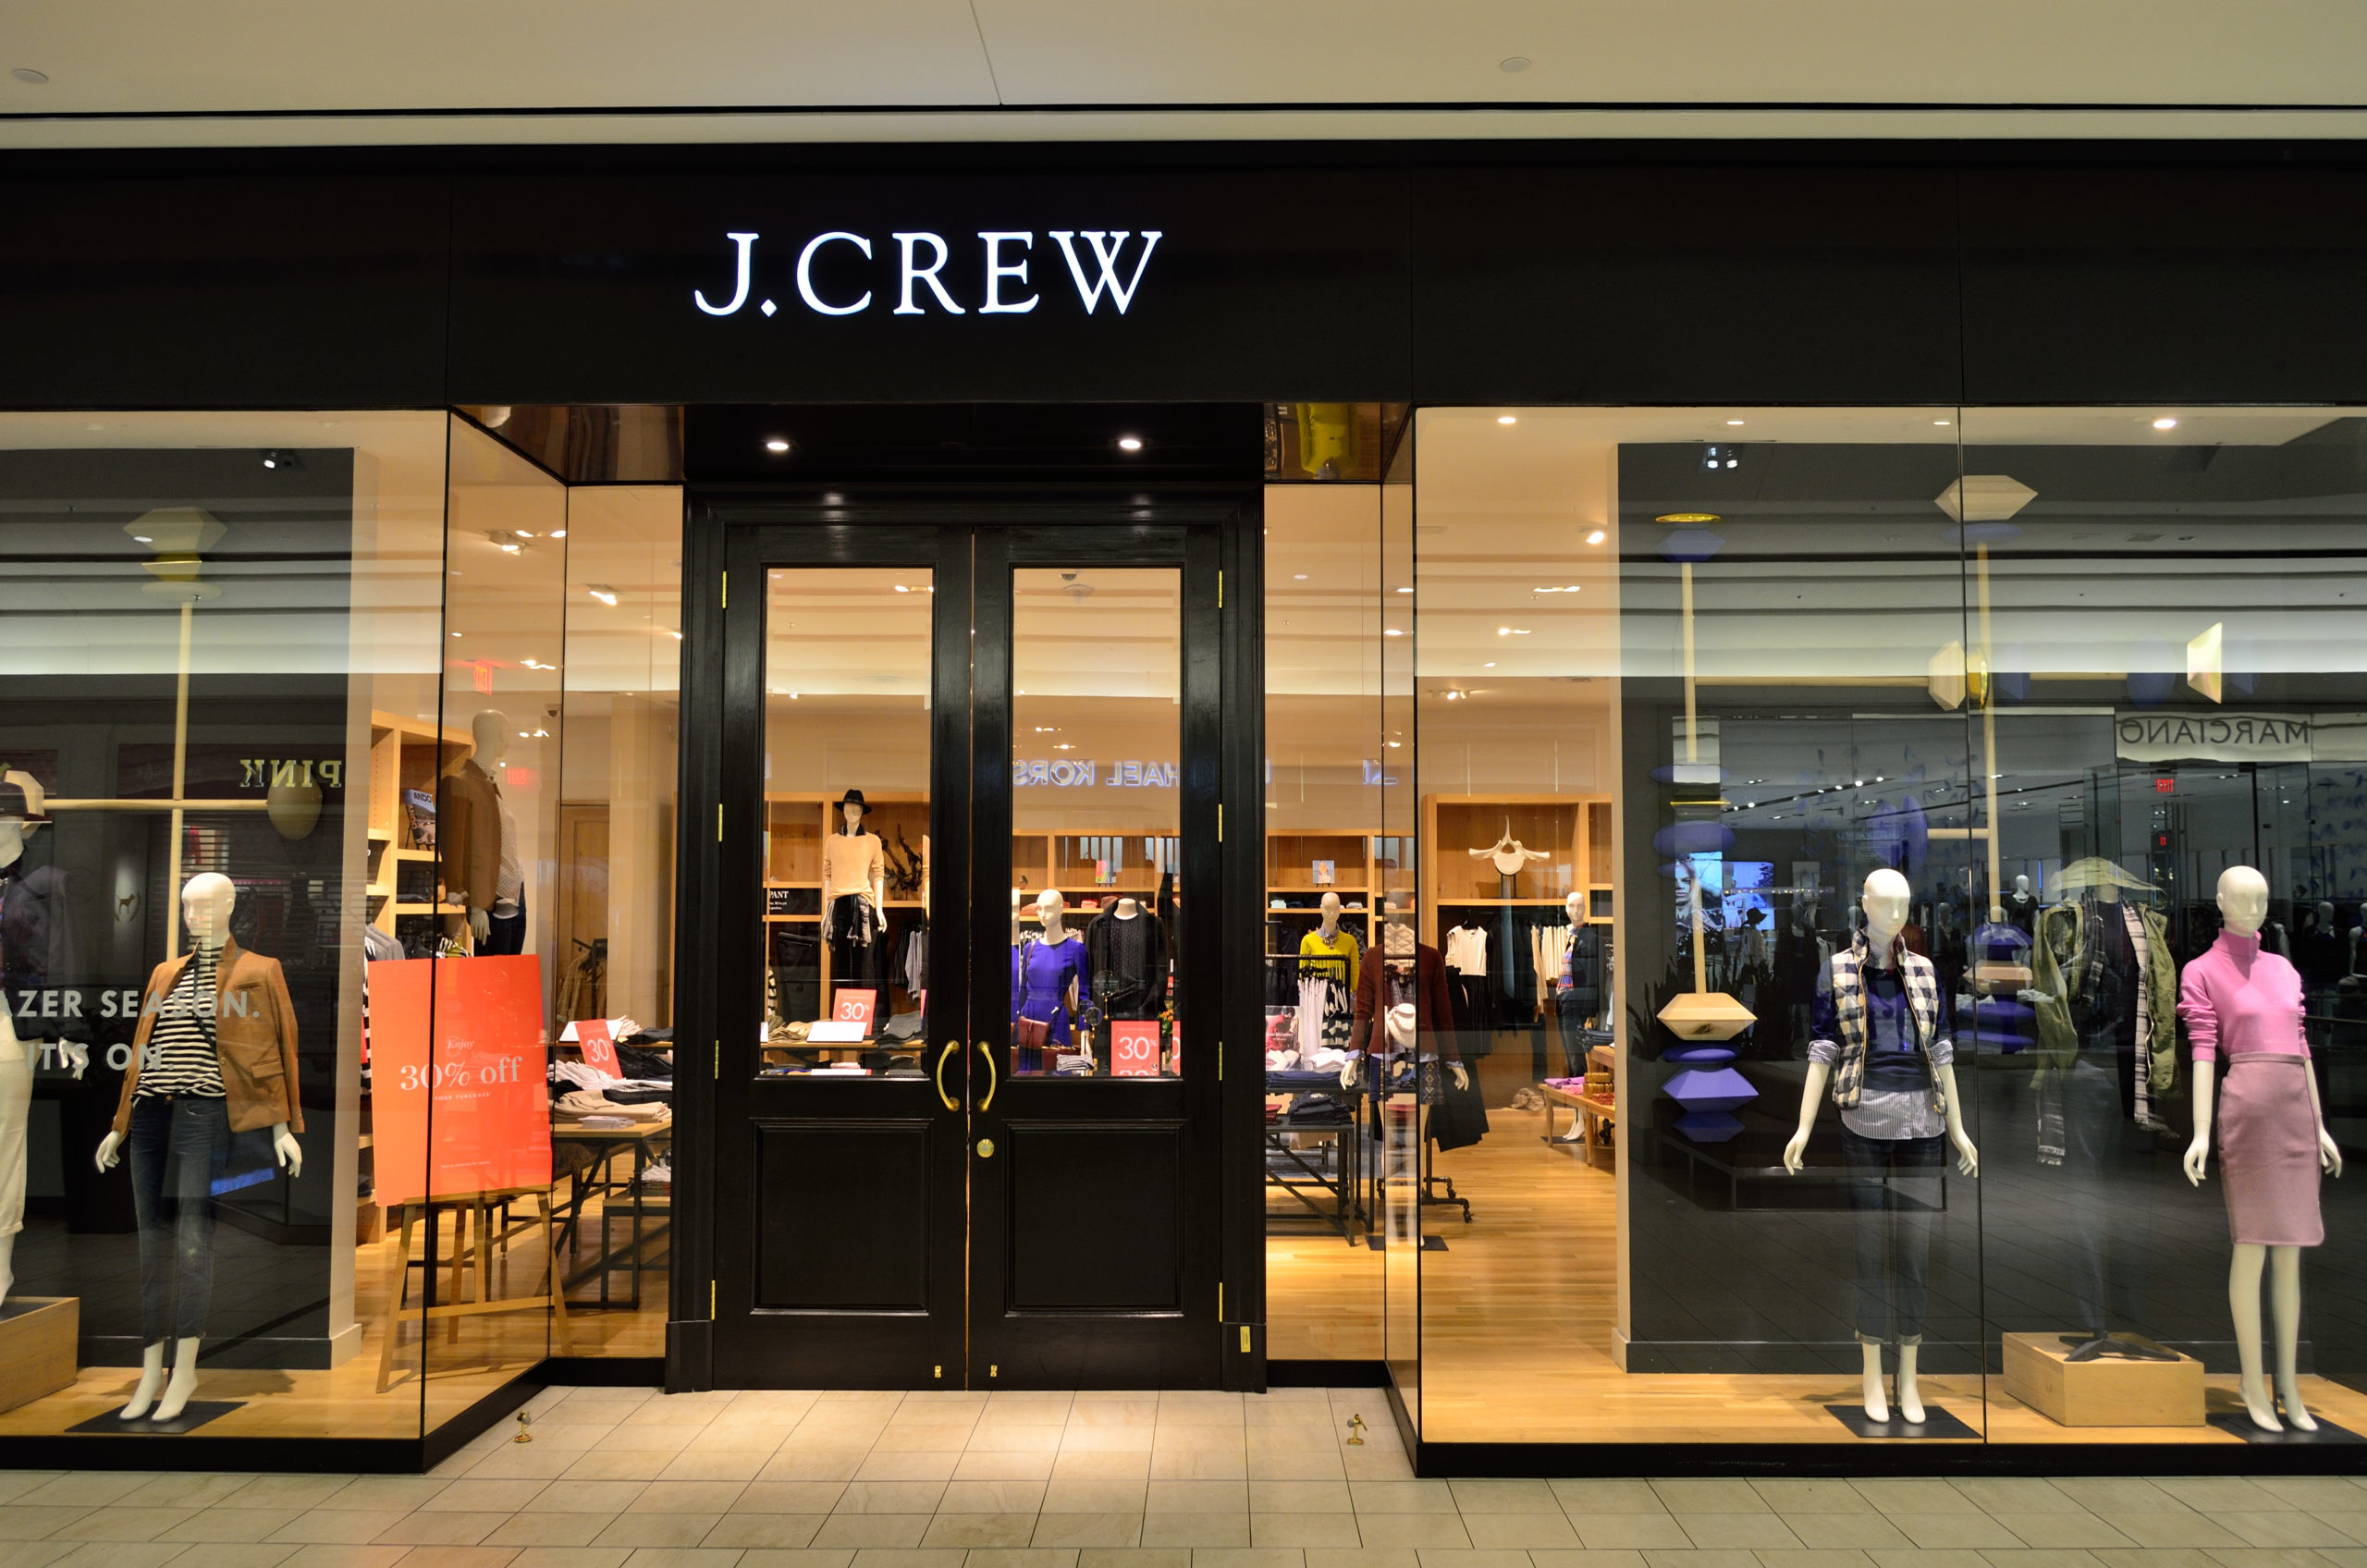 J Crew files for bankruptcy protection | Venture